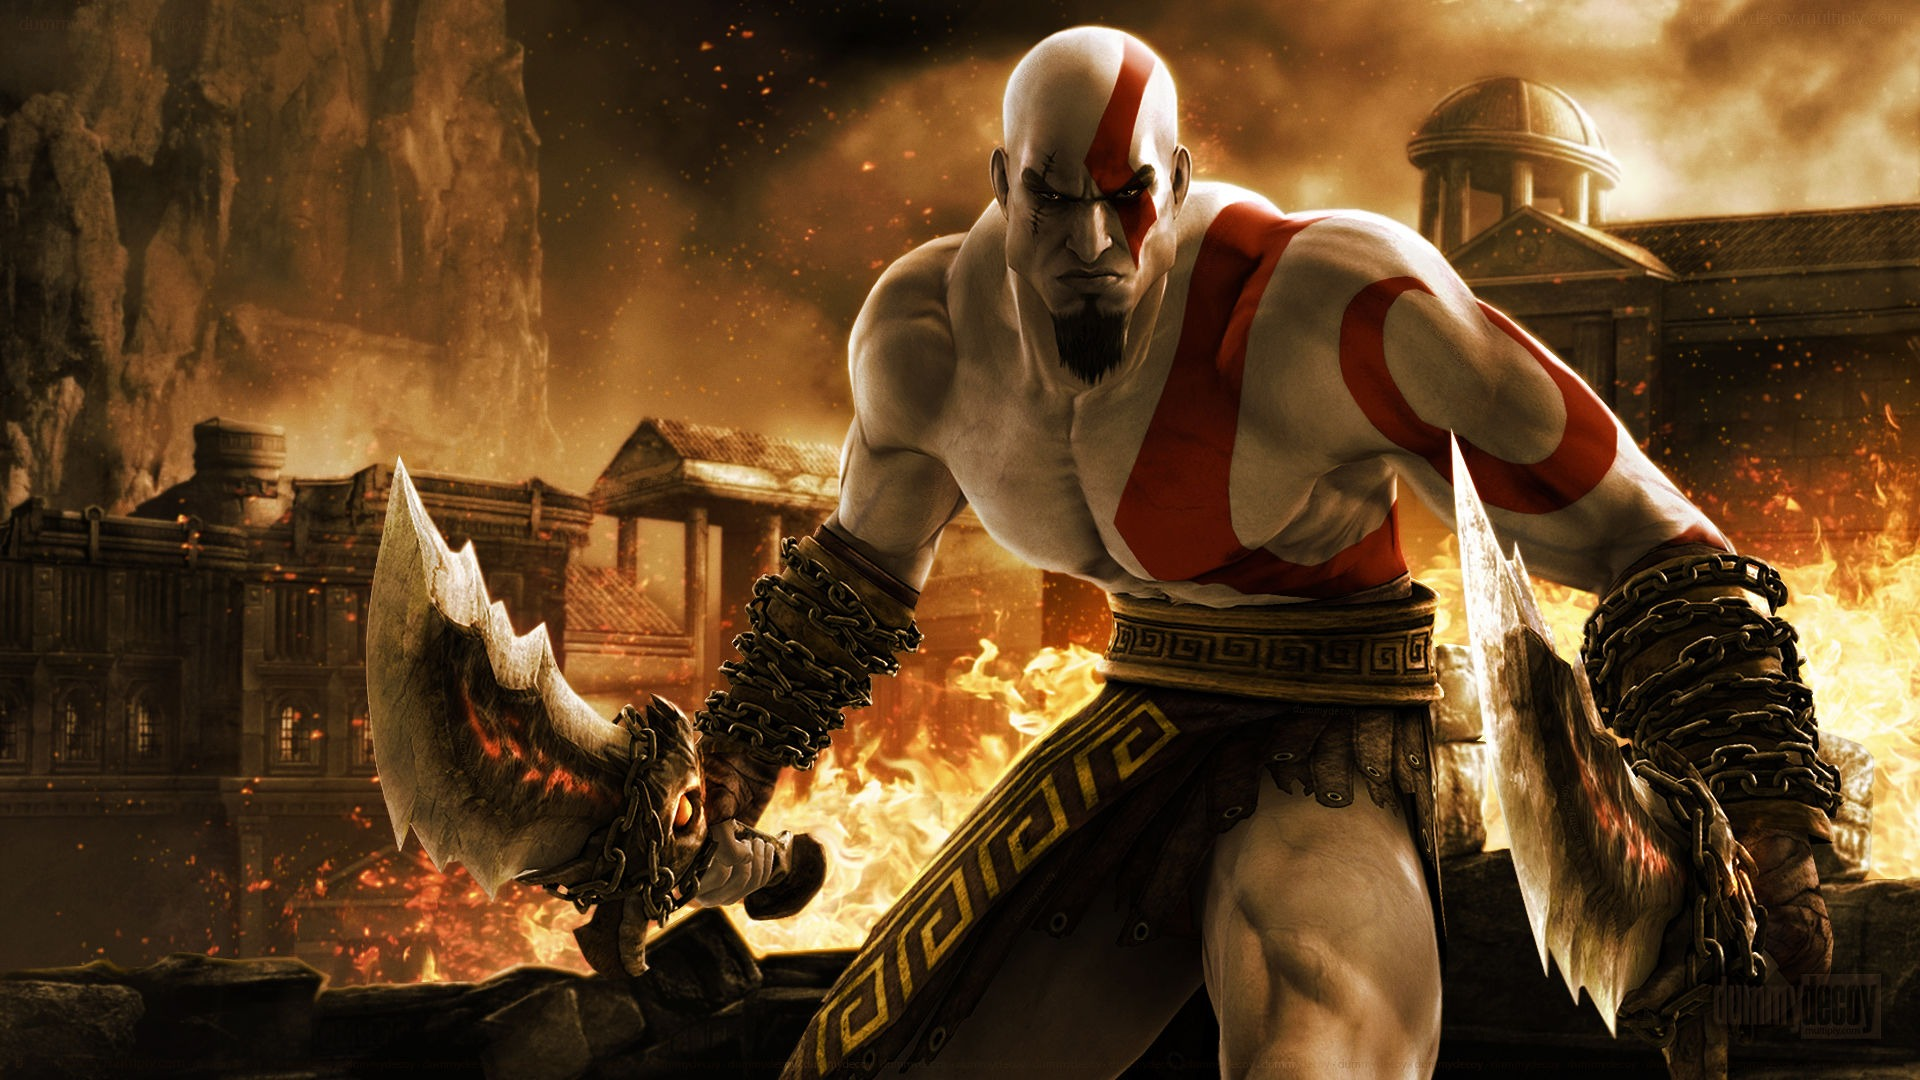 God of War - God of War